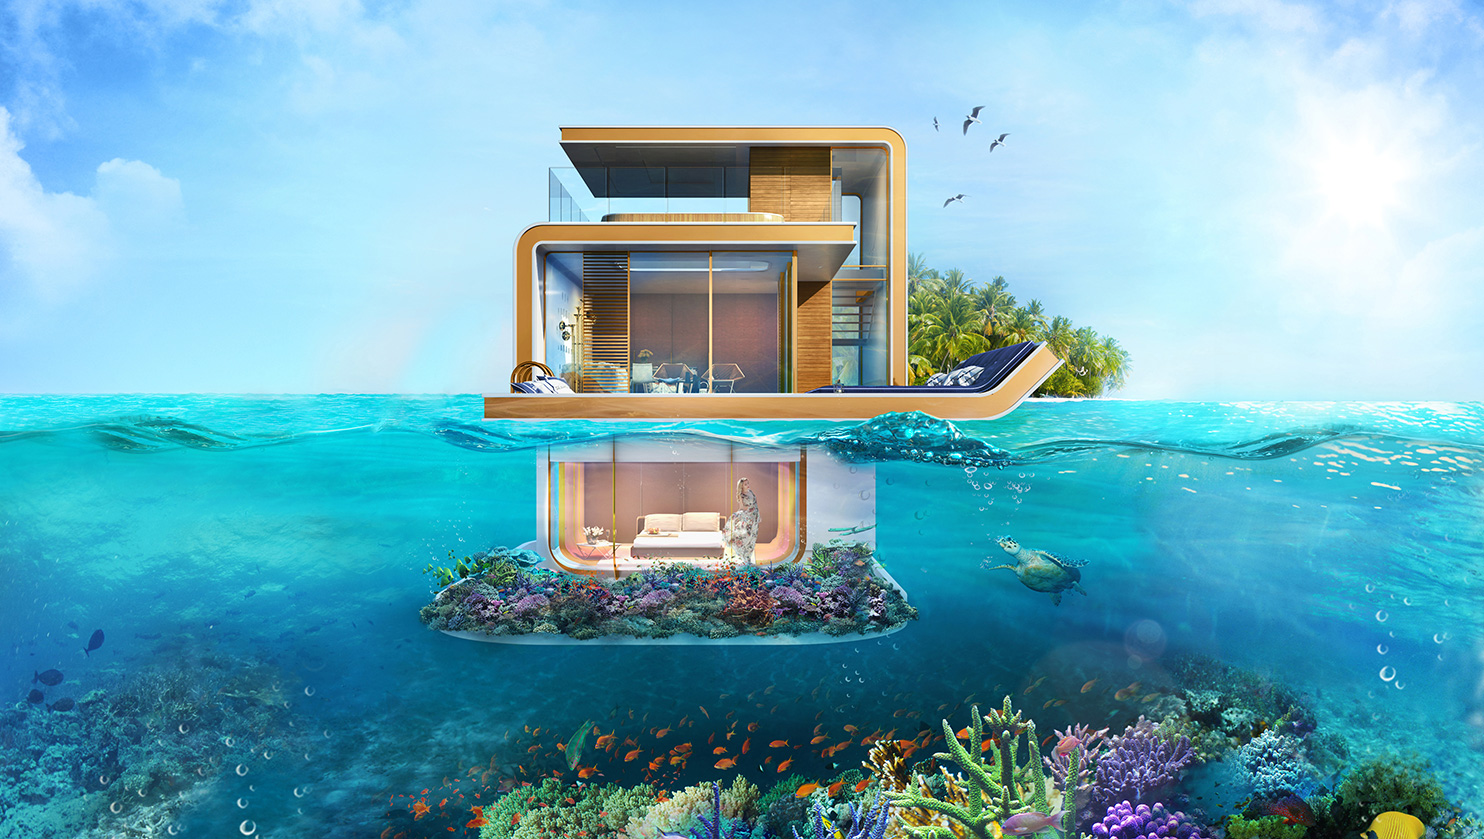 These Ultra Luxurious Floating Homes Look Incredible house1